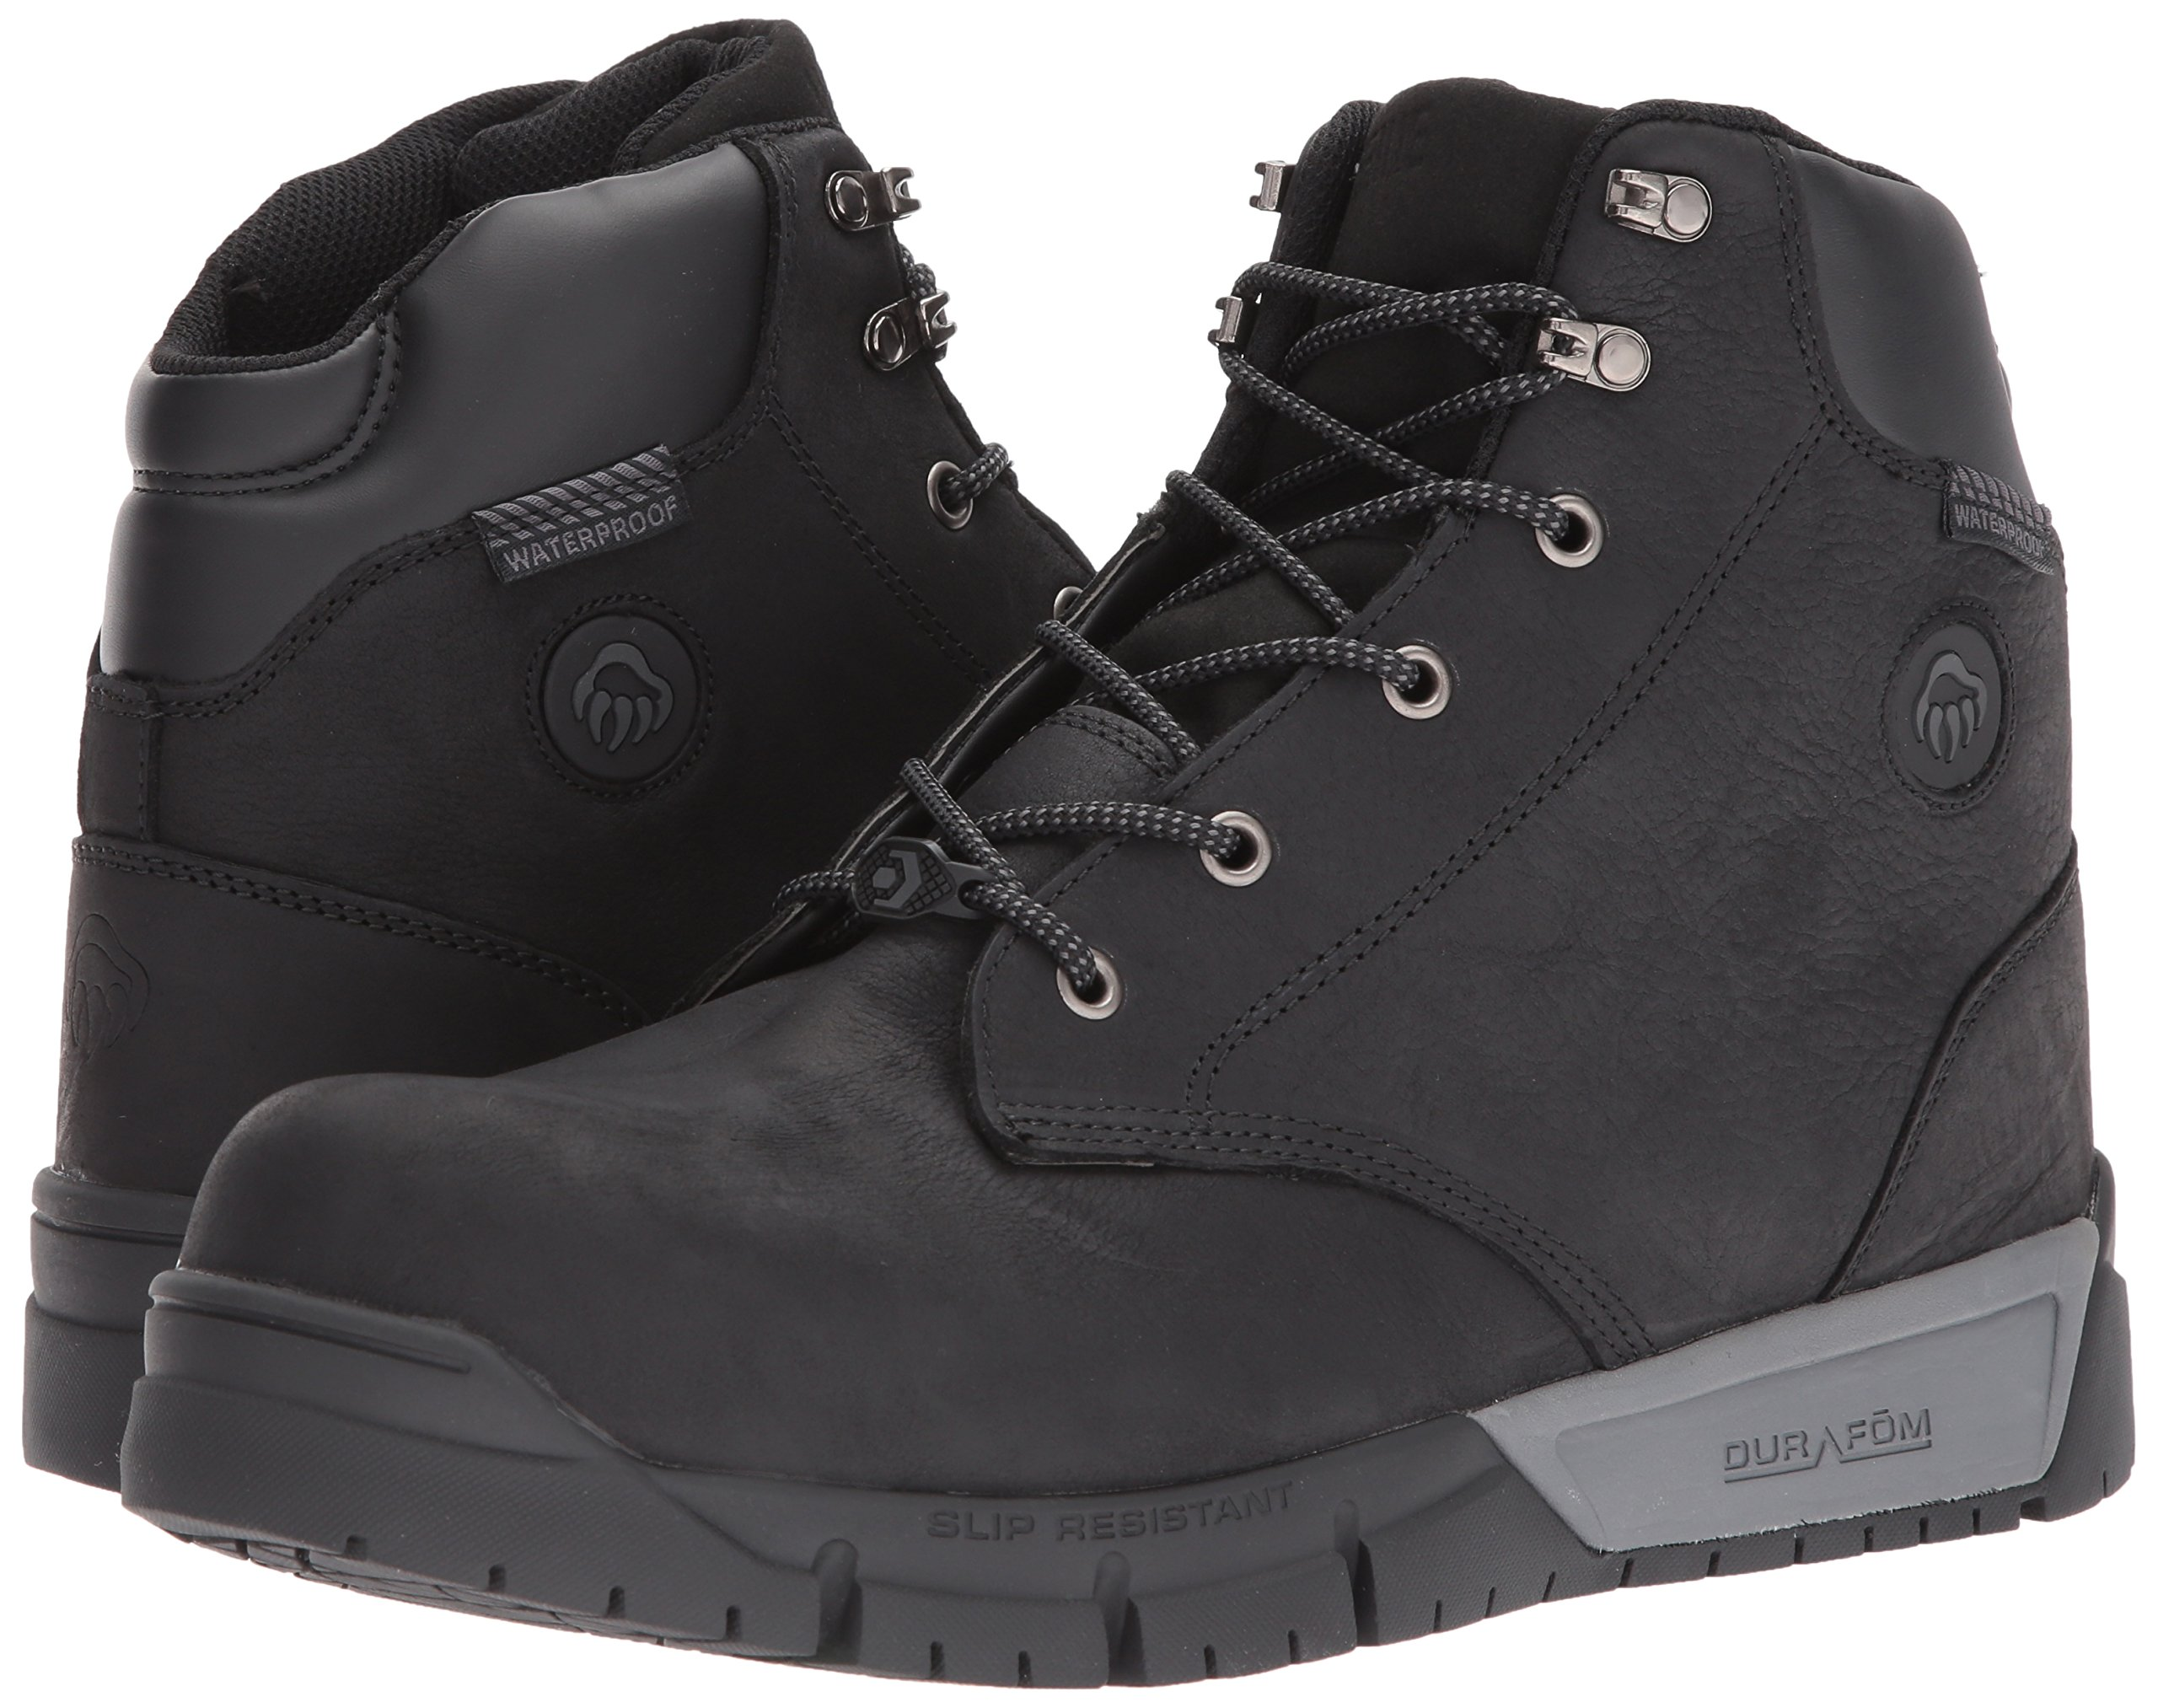 Wolverine Men's Mauler LX Composite Toe Waterproof Work Boot Black 7 W US by Wolverine (Image #6)